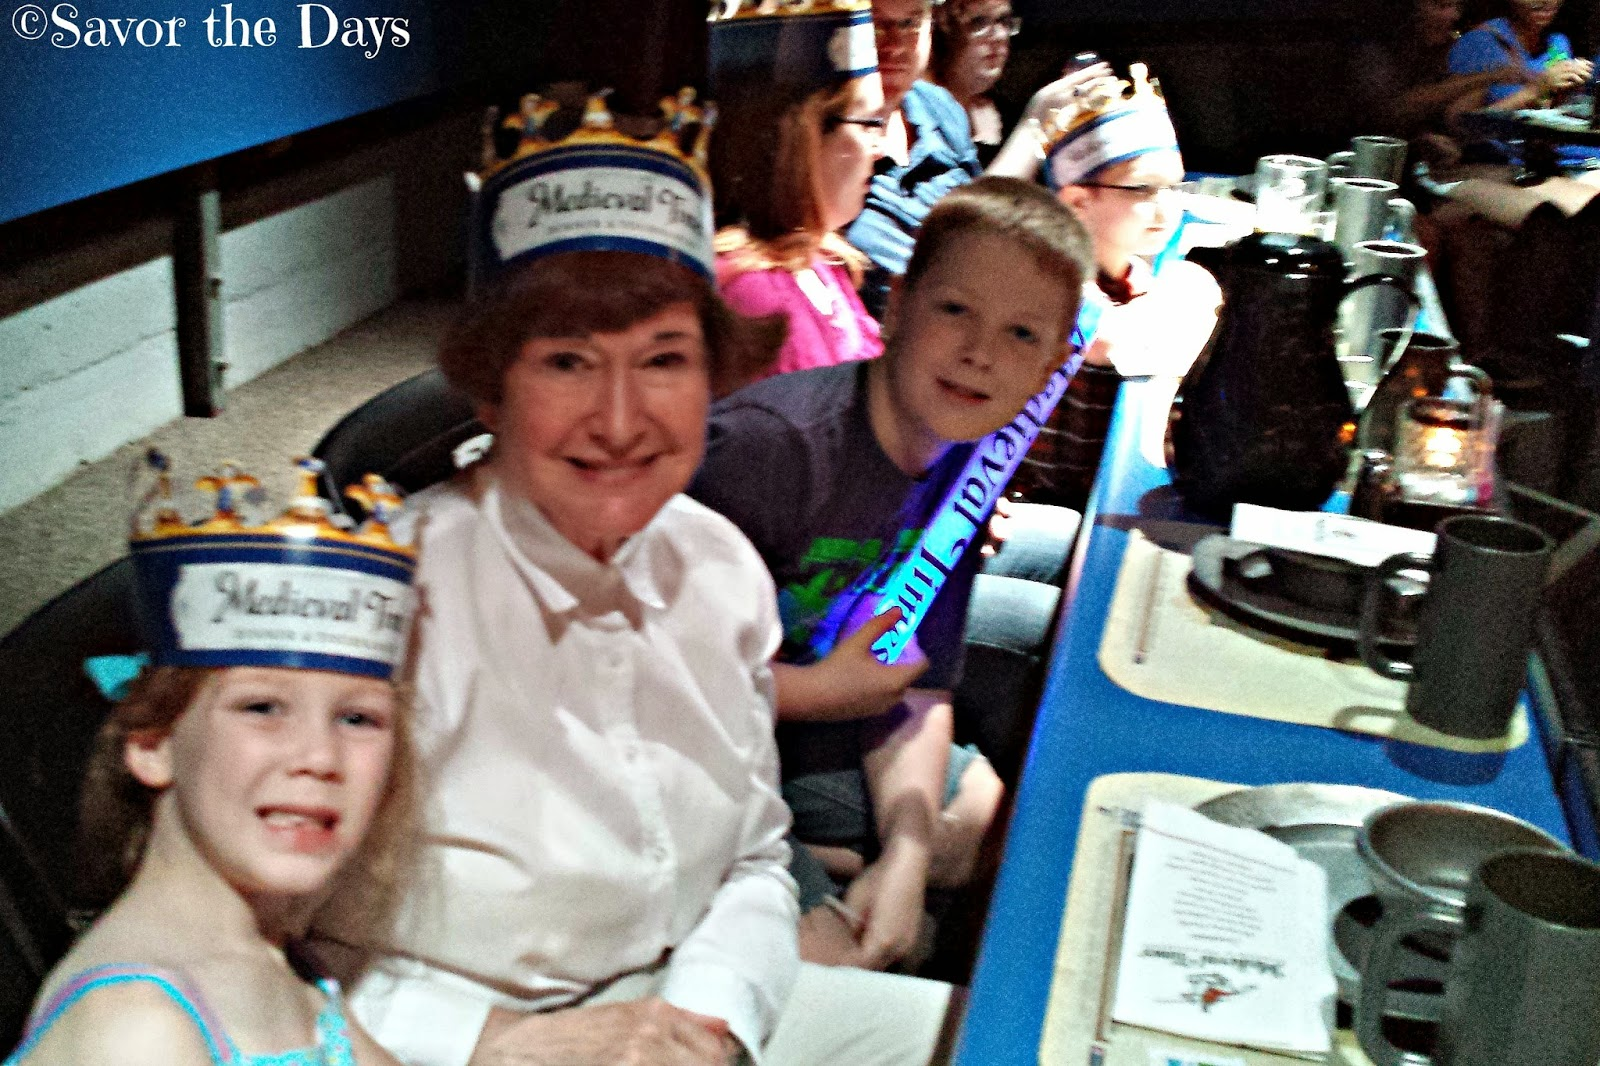 Crowns at Dallas Medieval Times